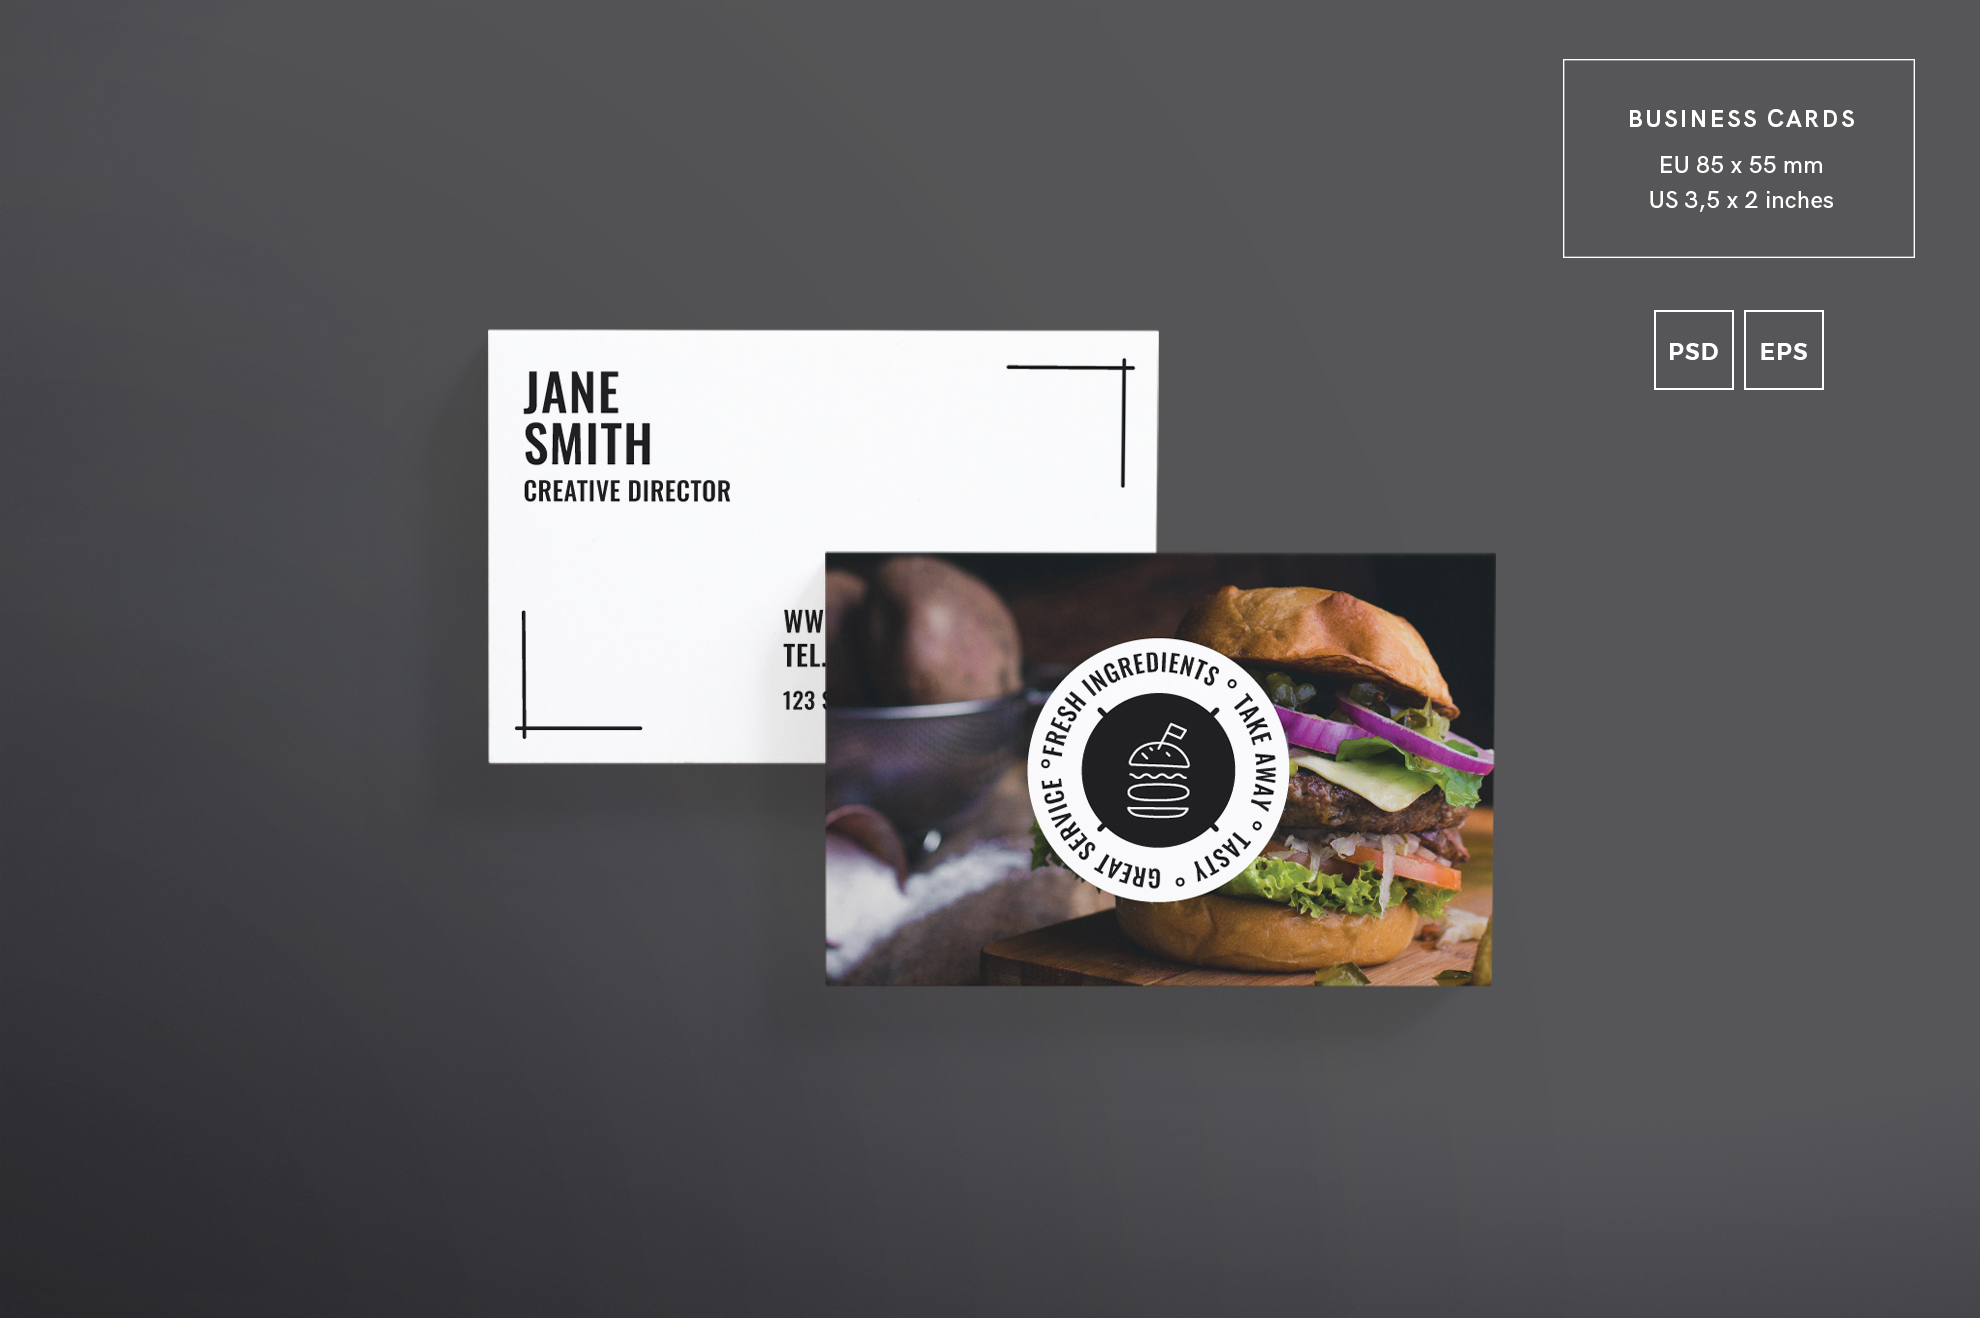 Burger house business card design templ design bundles burger house business card design templates kit example image 2 colourmoves